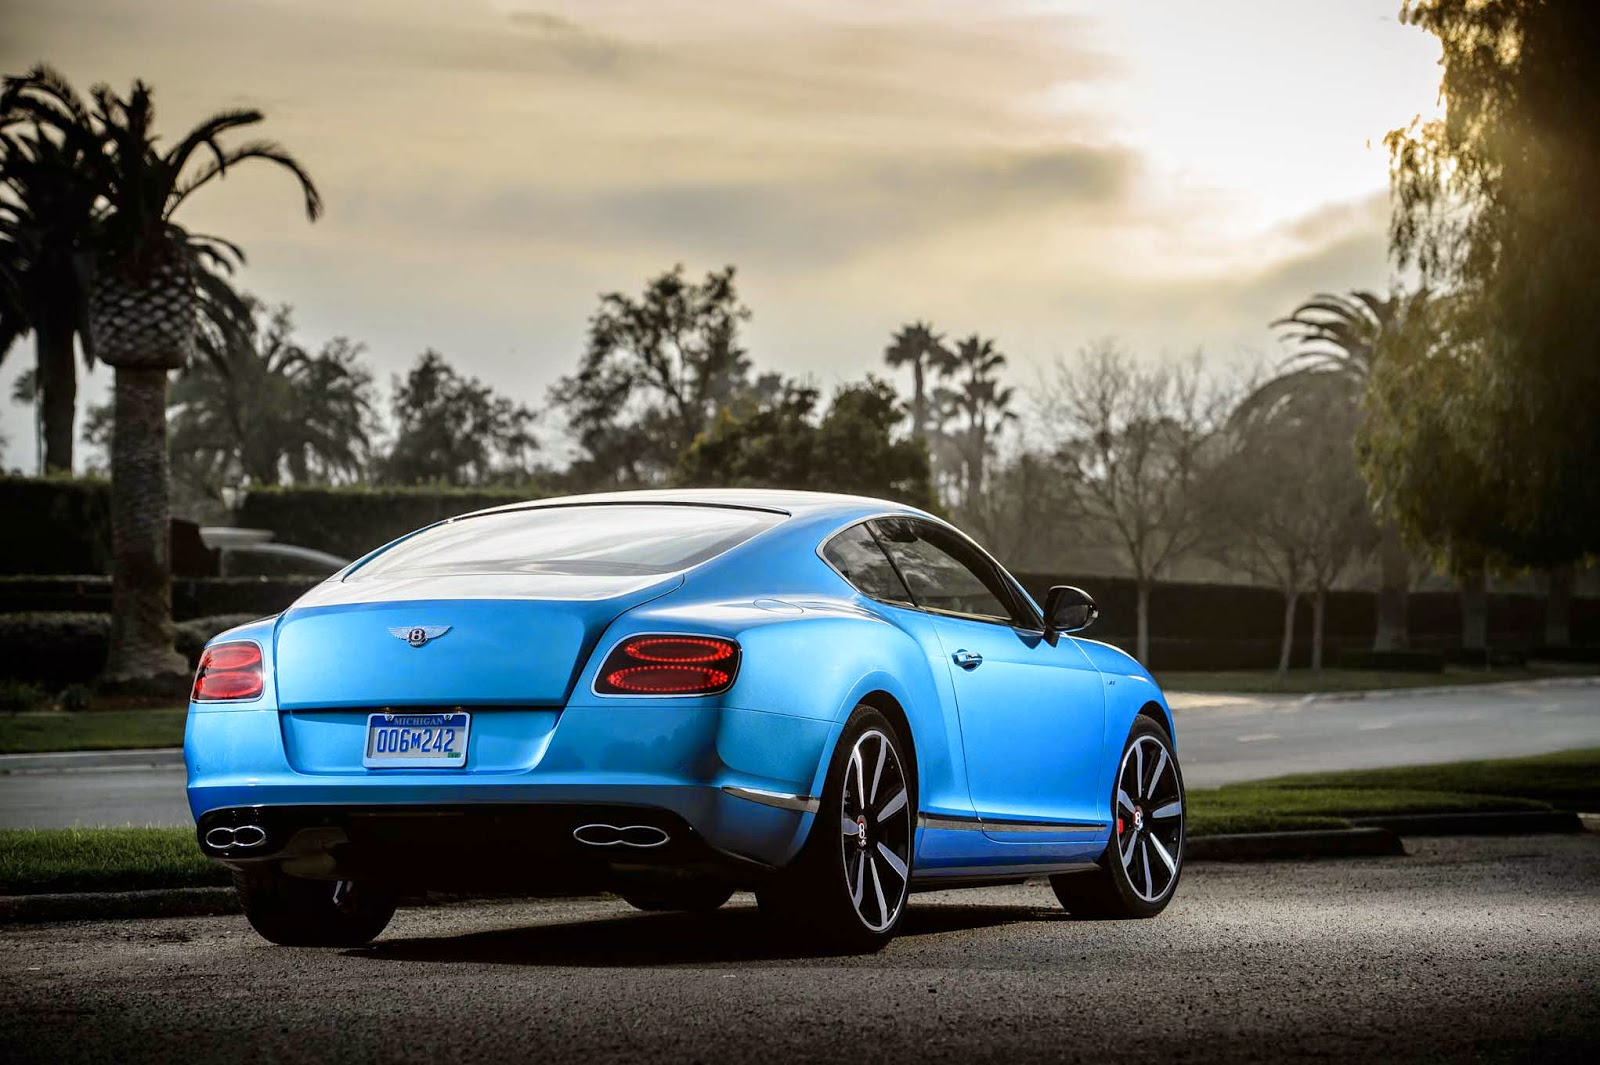 Bentley Continental GT V8 S Back View Image